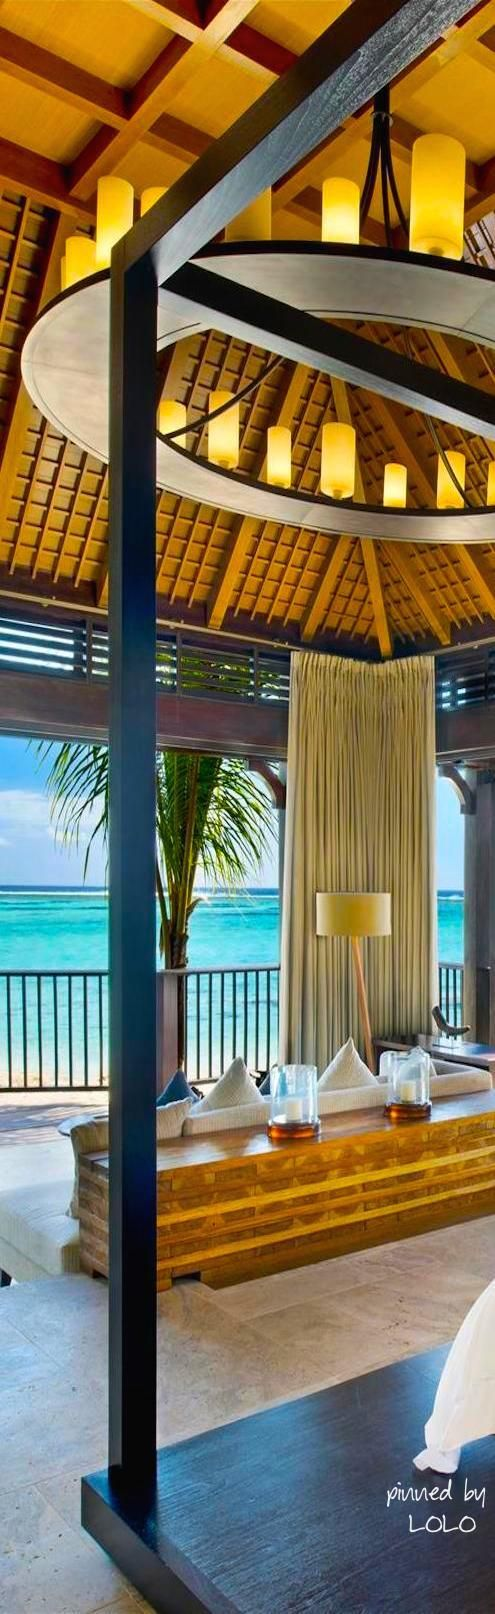 Room with a beach view at The St. Regis Mauritius Resort | LOLO